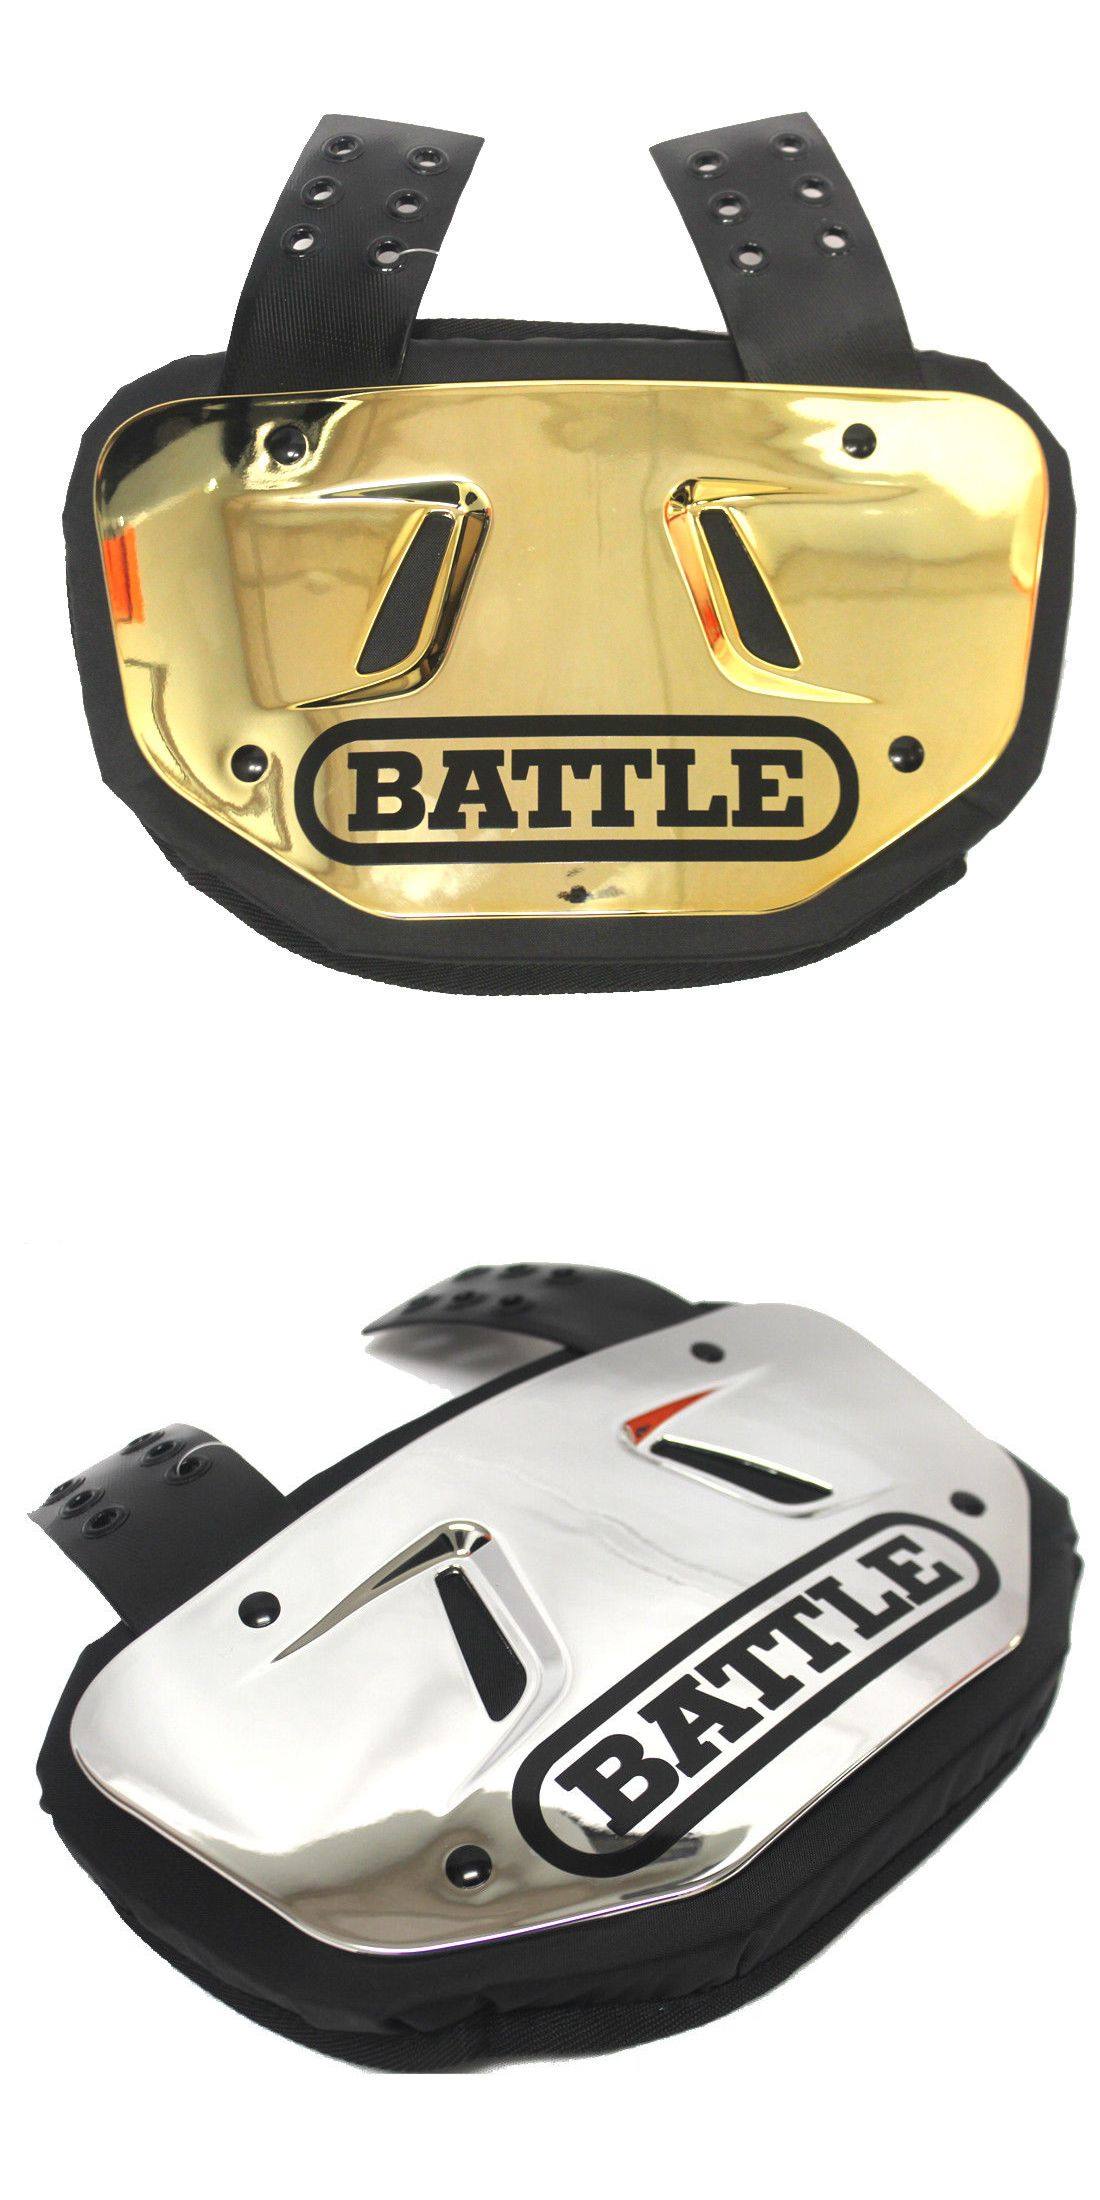 Football 21214  Battle Adult Or Youth Chrome Gold Or Silver Back Plate  Football Backplate -  BUY IT NOW ONLY   49.99 on eBay! 9c05d24d33e5d